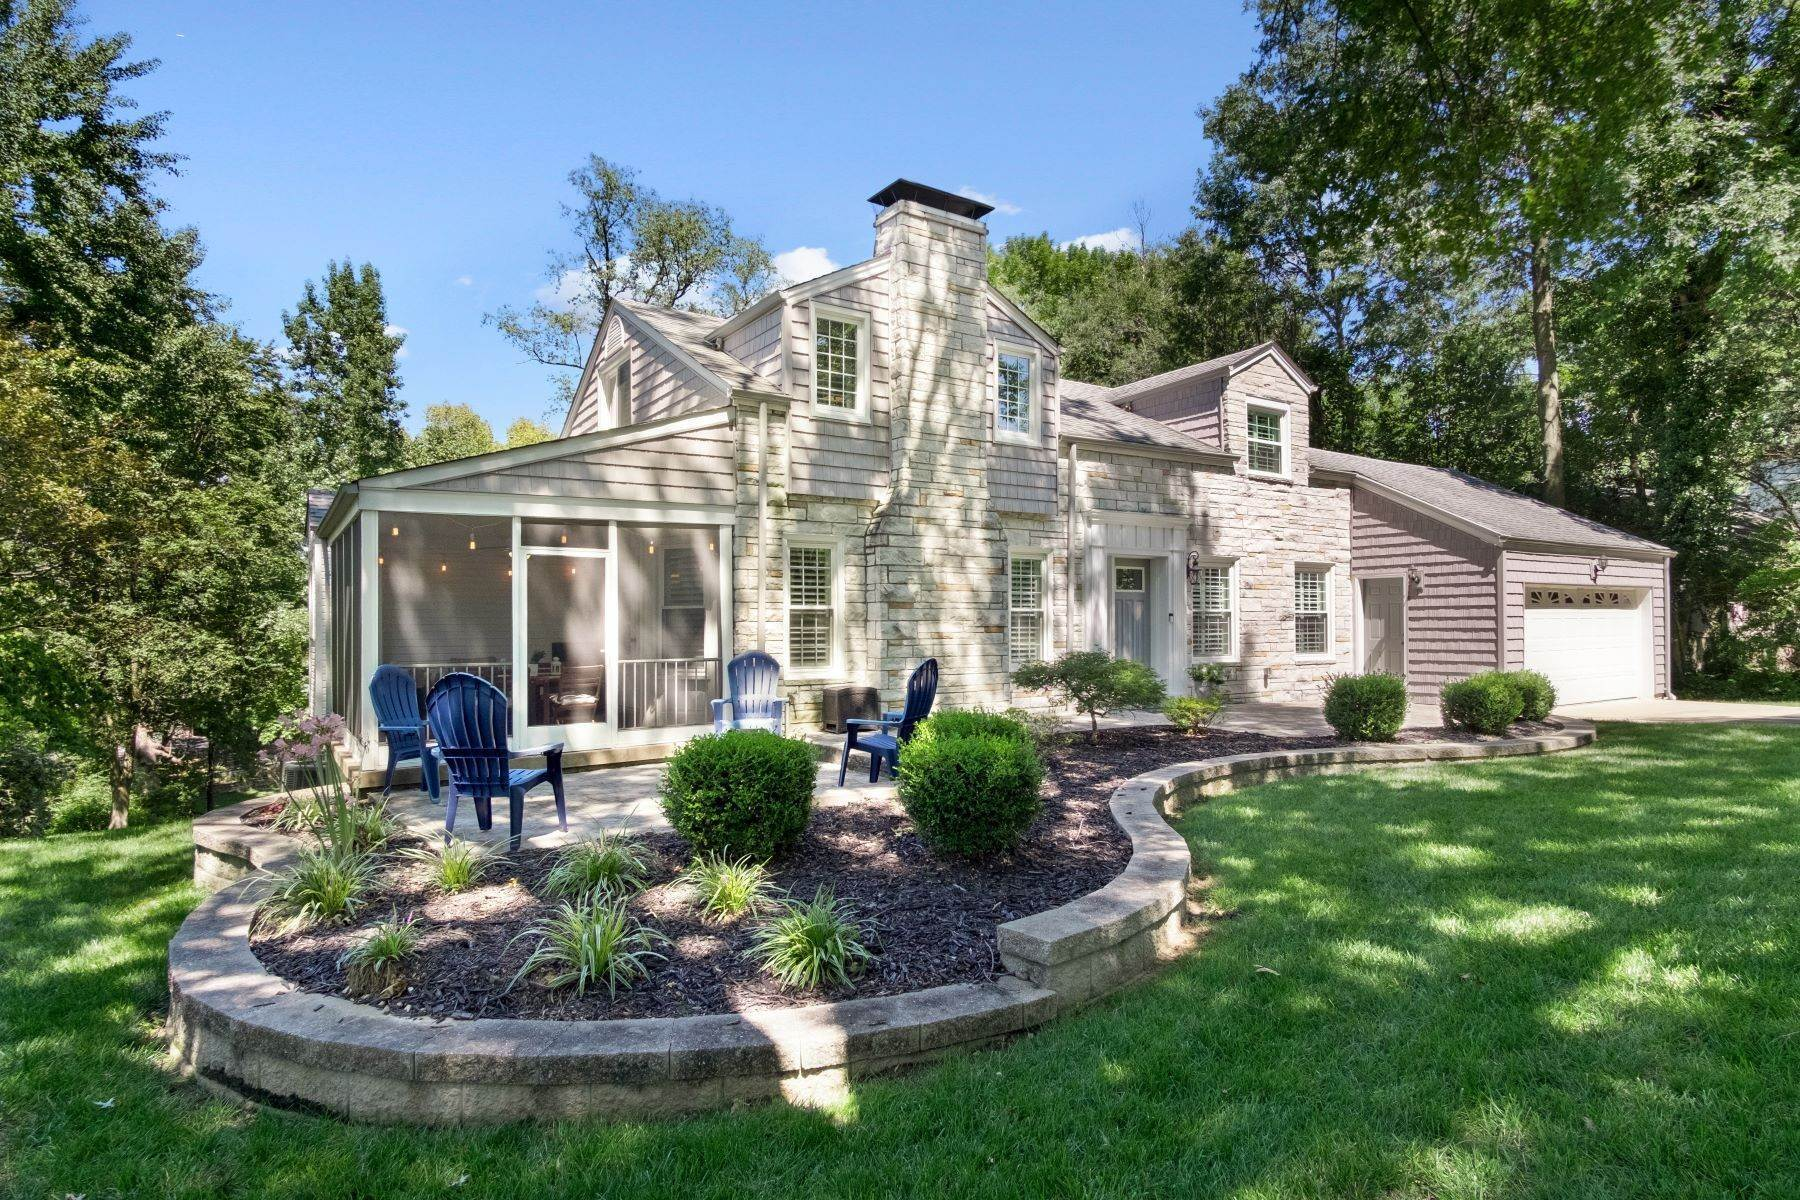 Single Family Homes for Sale at Charming Cape Cod Home In Ladue Schools 4 Chaminade Drive Creve Coeur, Missouri 63141 United States